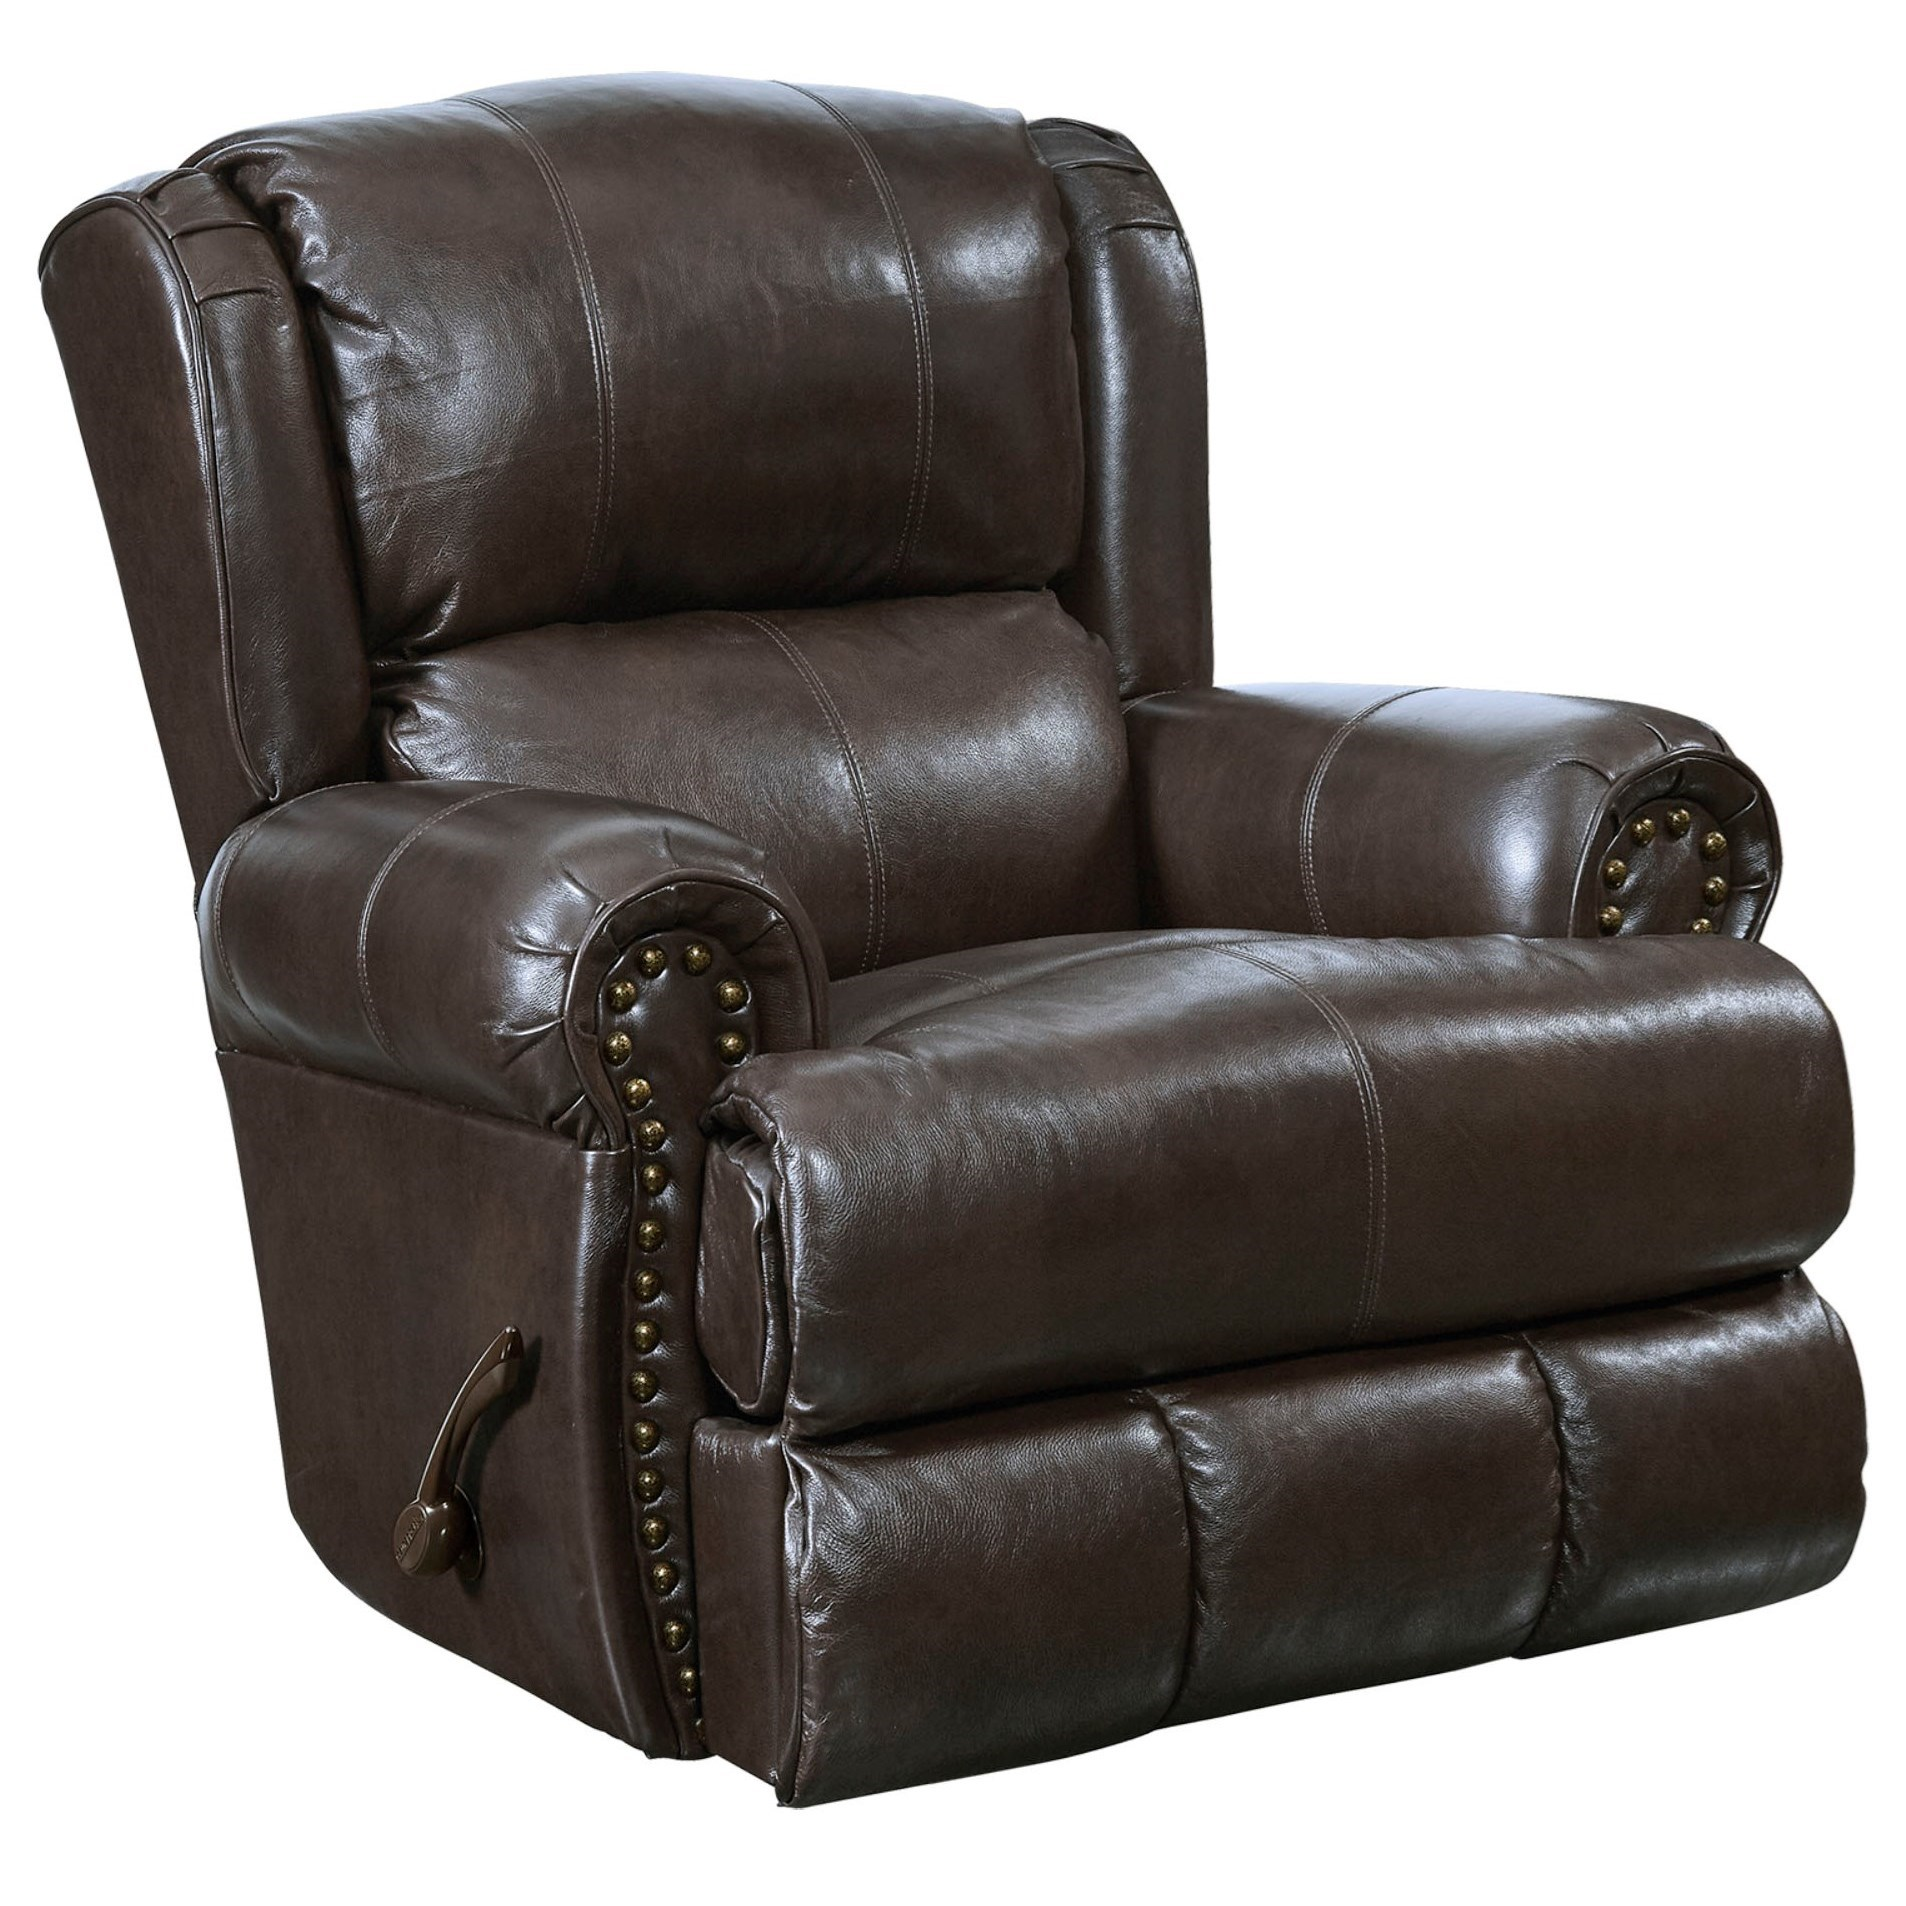 Duncan Deluxe Glider Recliner by Catnapper at Northeast Factory Direct